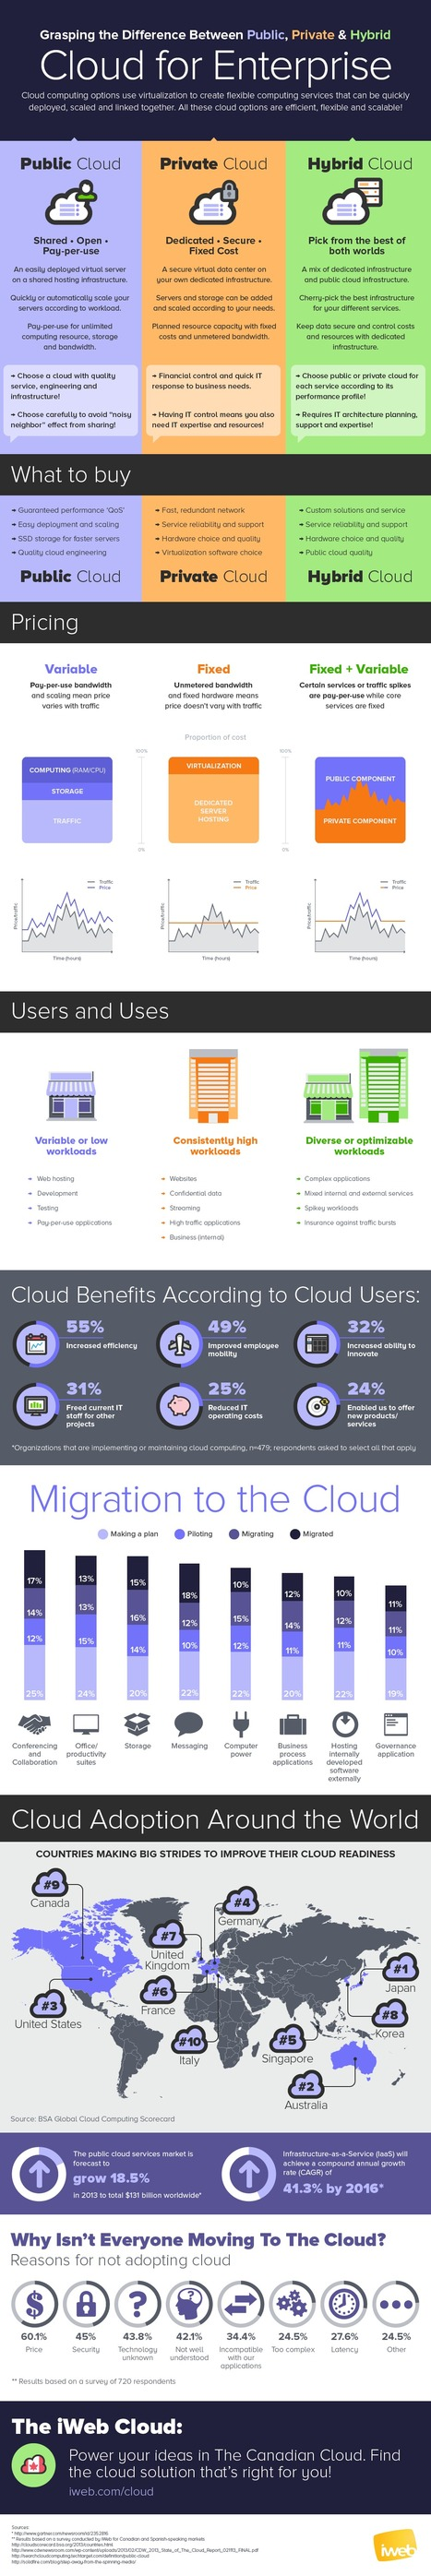 Cloud Infographic: Cloud Public, Private & Hybrid Differences - CloudTweaks.com - Cloud Computing Information | To Cloud or not to Cloud ? | Scoop.it